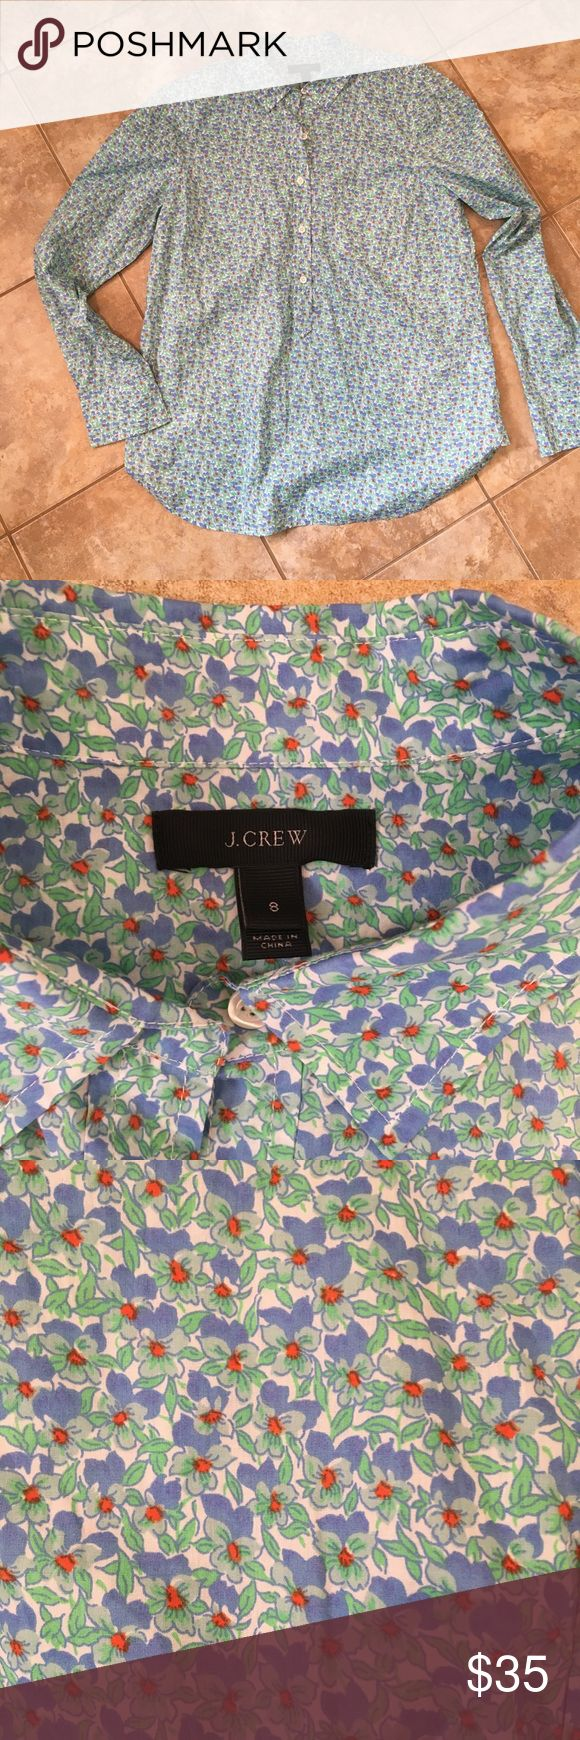 J. Crew perfect shirt 💝 This J Crew shirt is in EUC. Really cute and comfy and I love that it has a longer, over the hip fit so it can be worn over leggings. 💝 throw a vest over this and pair with skinnies and ankle boots for a perfect fall look!! J. Crew Tops Button Down Shirts